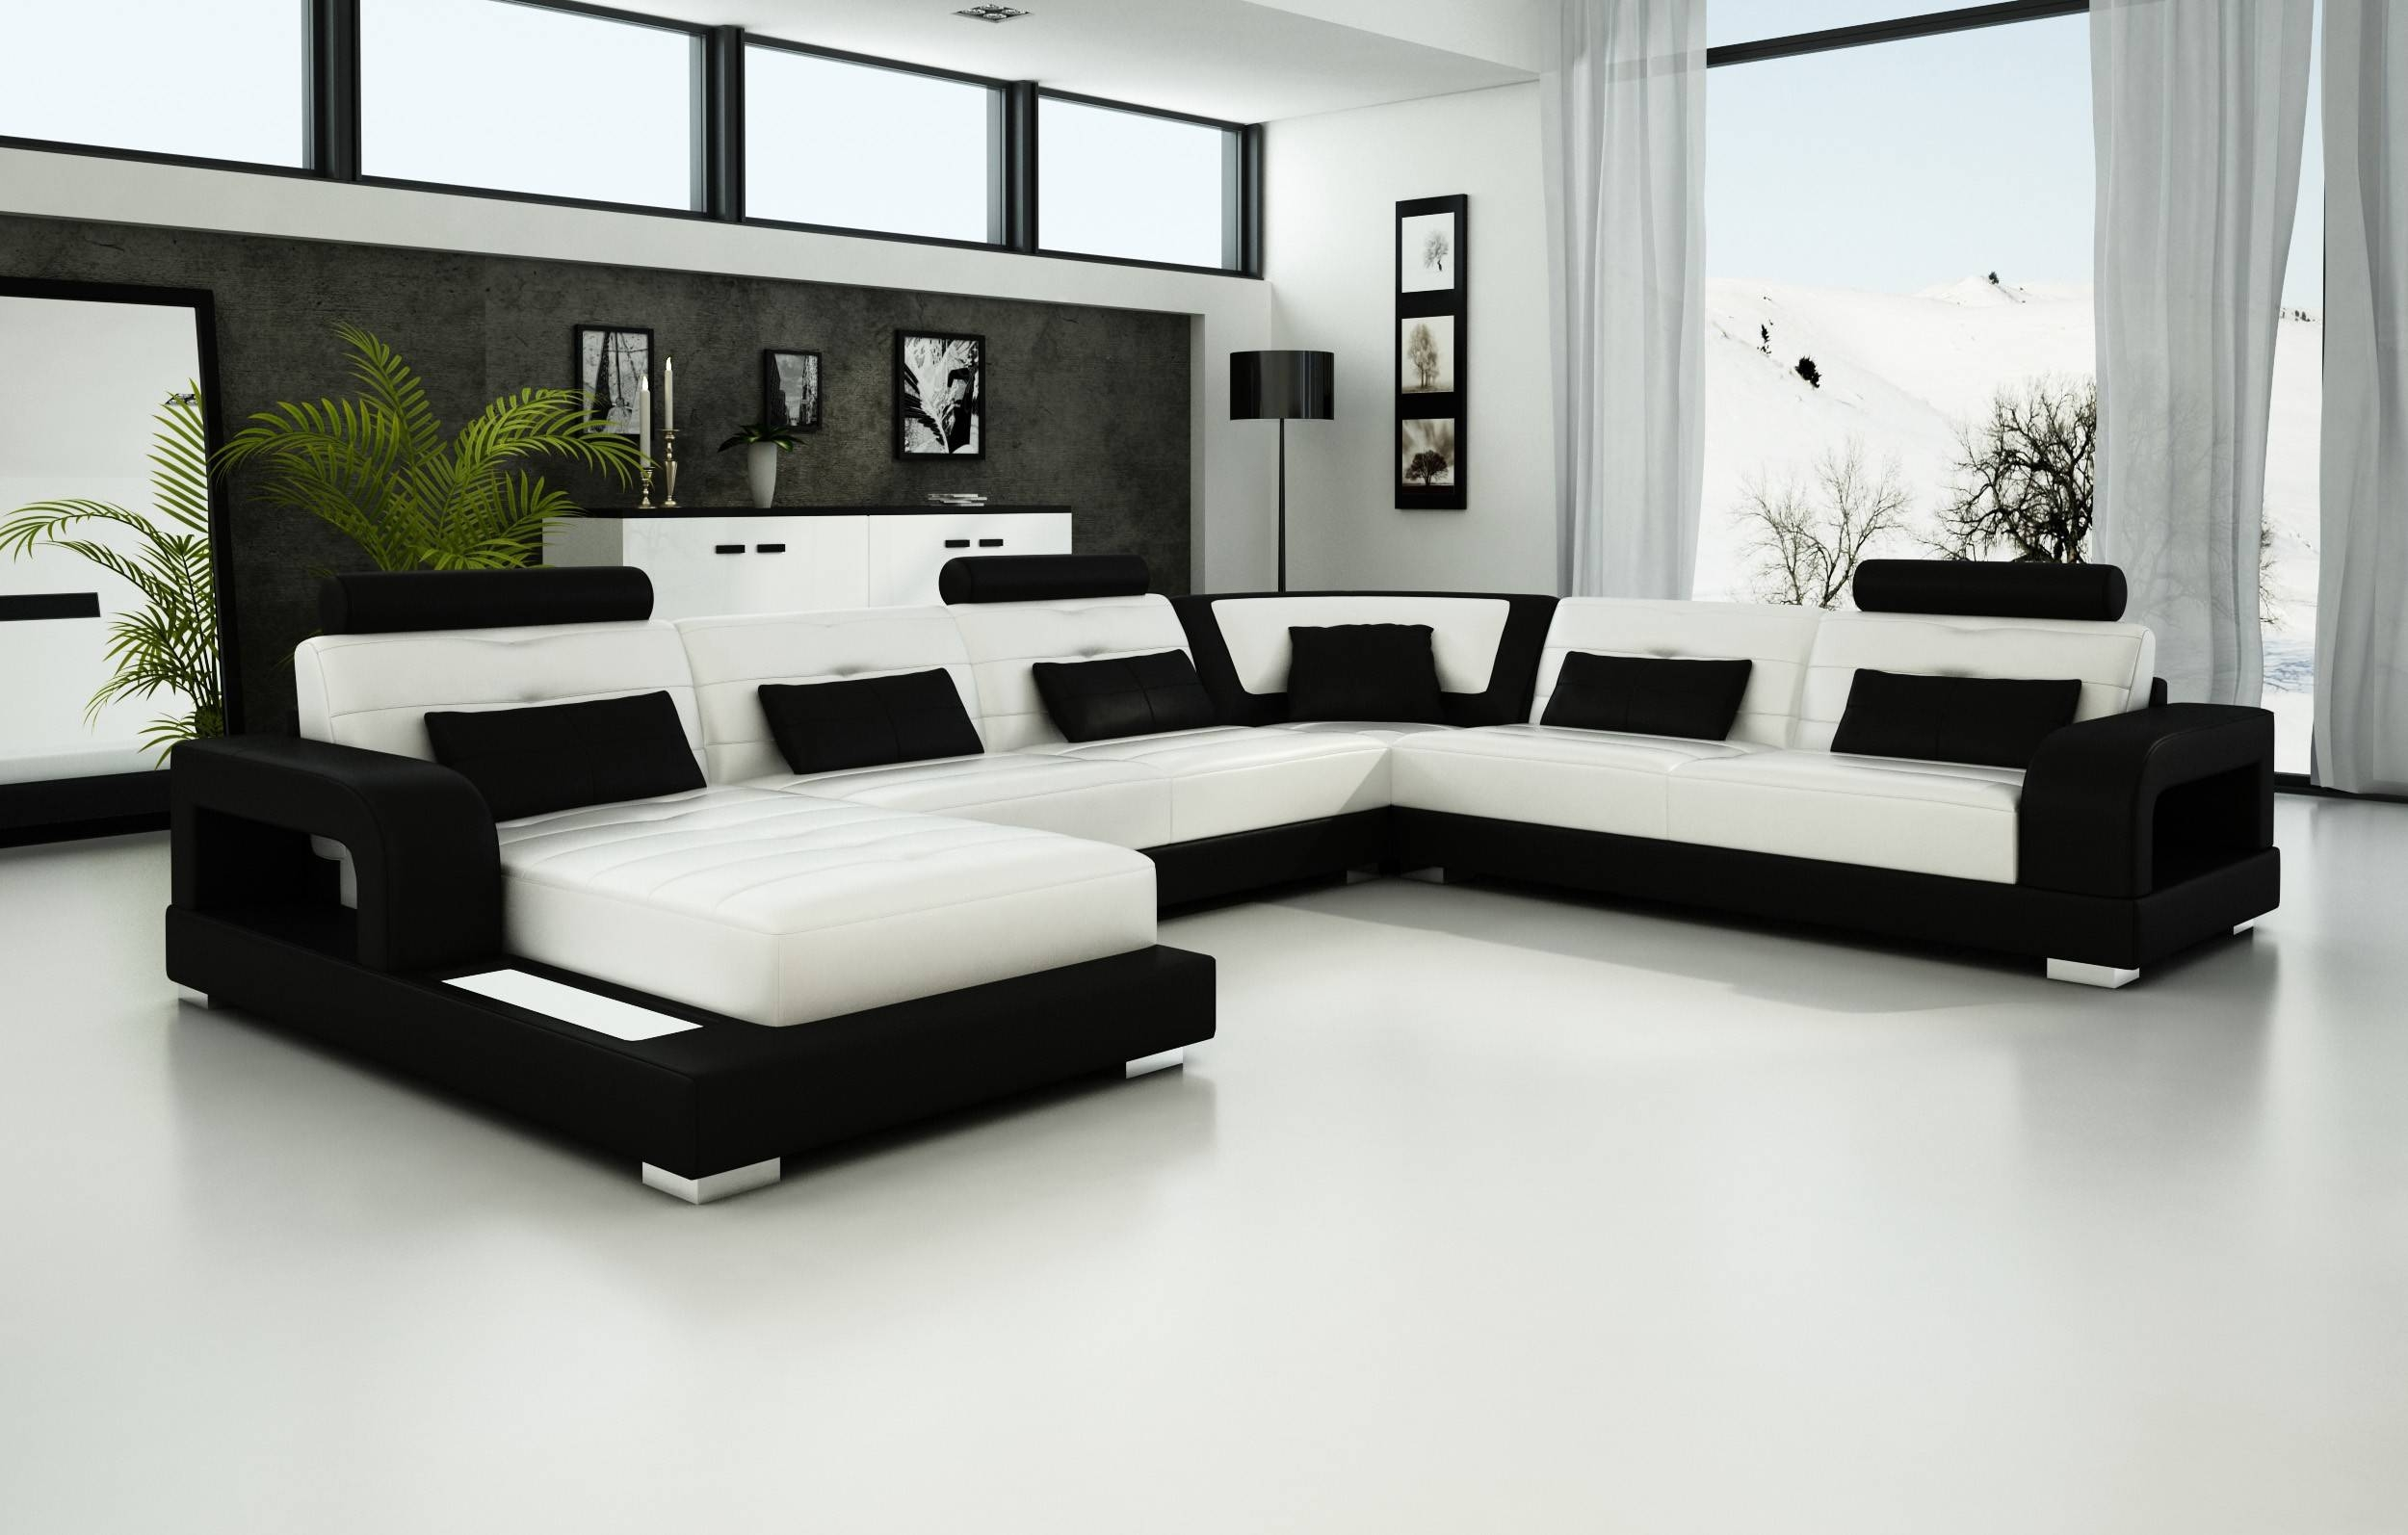 combinations rooms with cover white livings color chaos sofas prevnav designs in walls nextnav room genius living